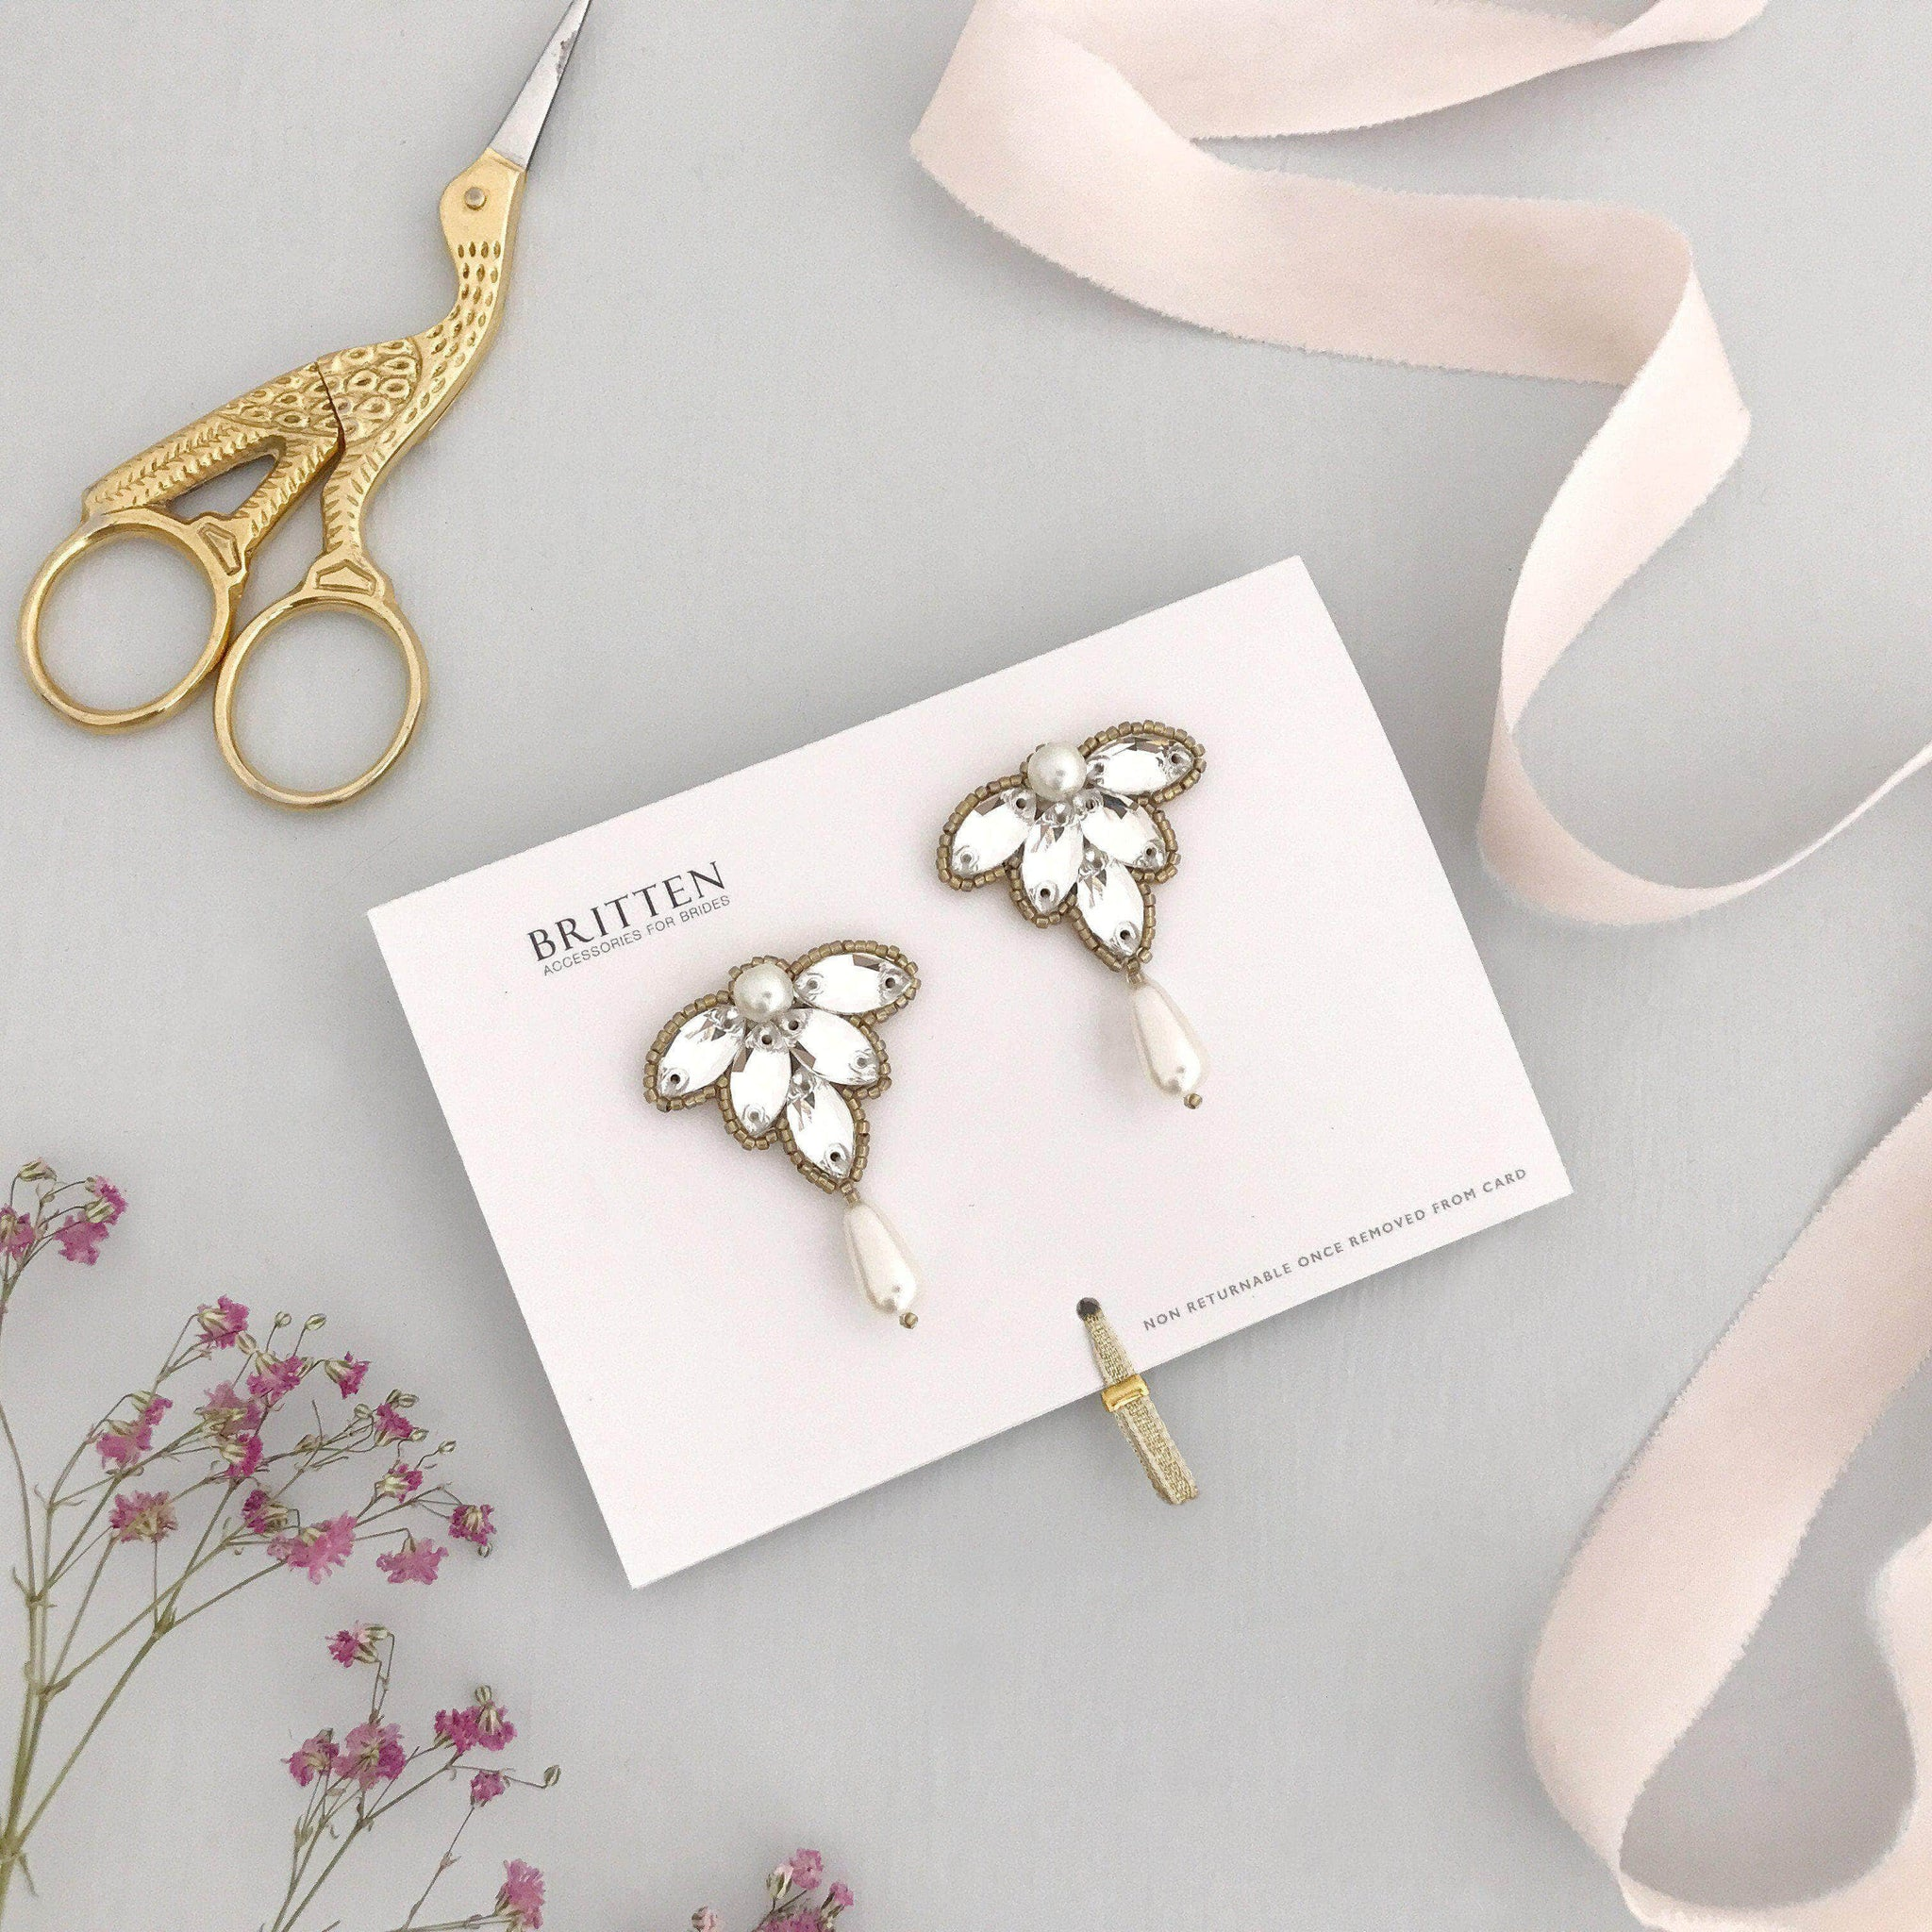 Crystal wedding earrings gold and pearl - 'Florence'